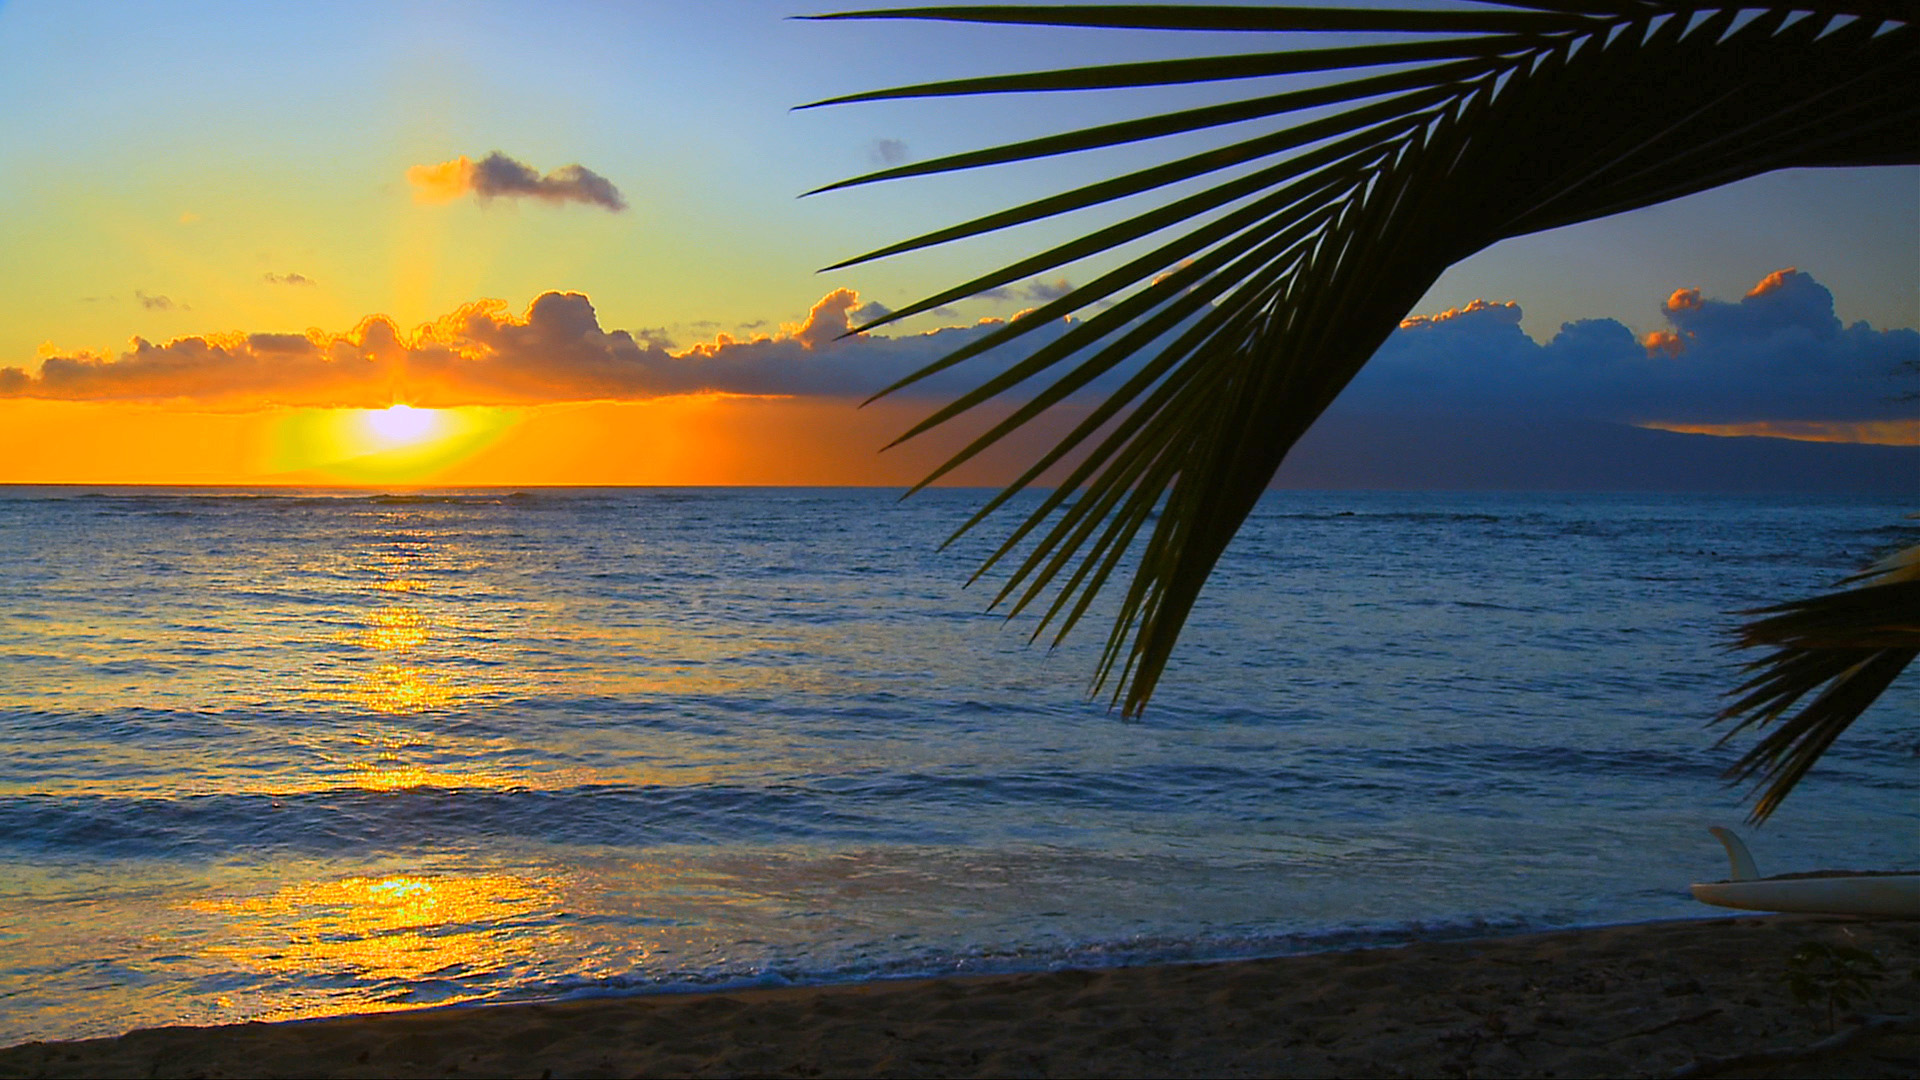 Hawaii Beaches Wallpaper Desktop images 1920x1080